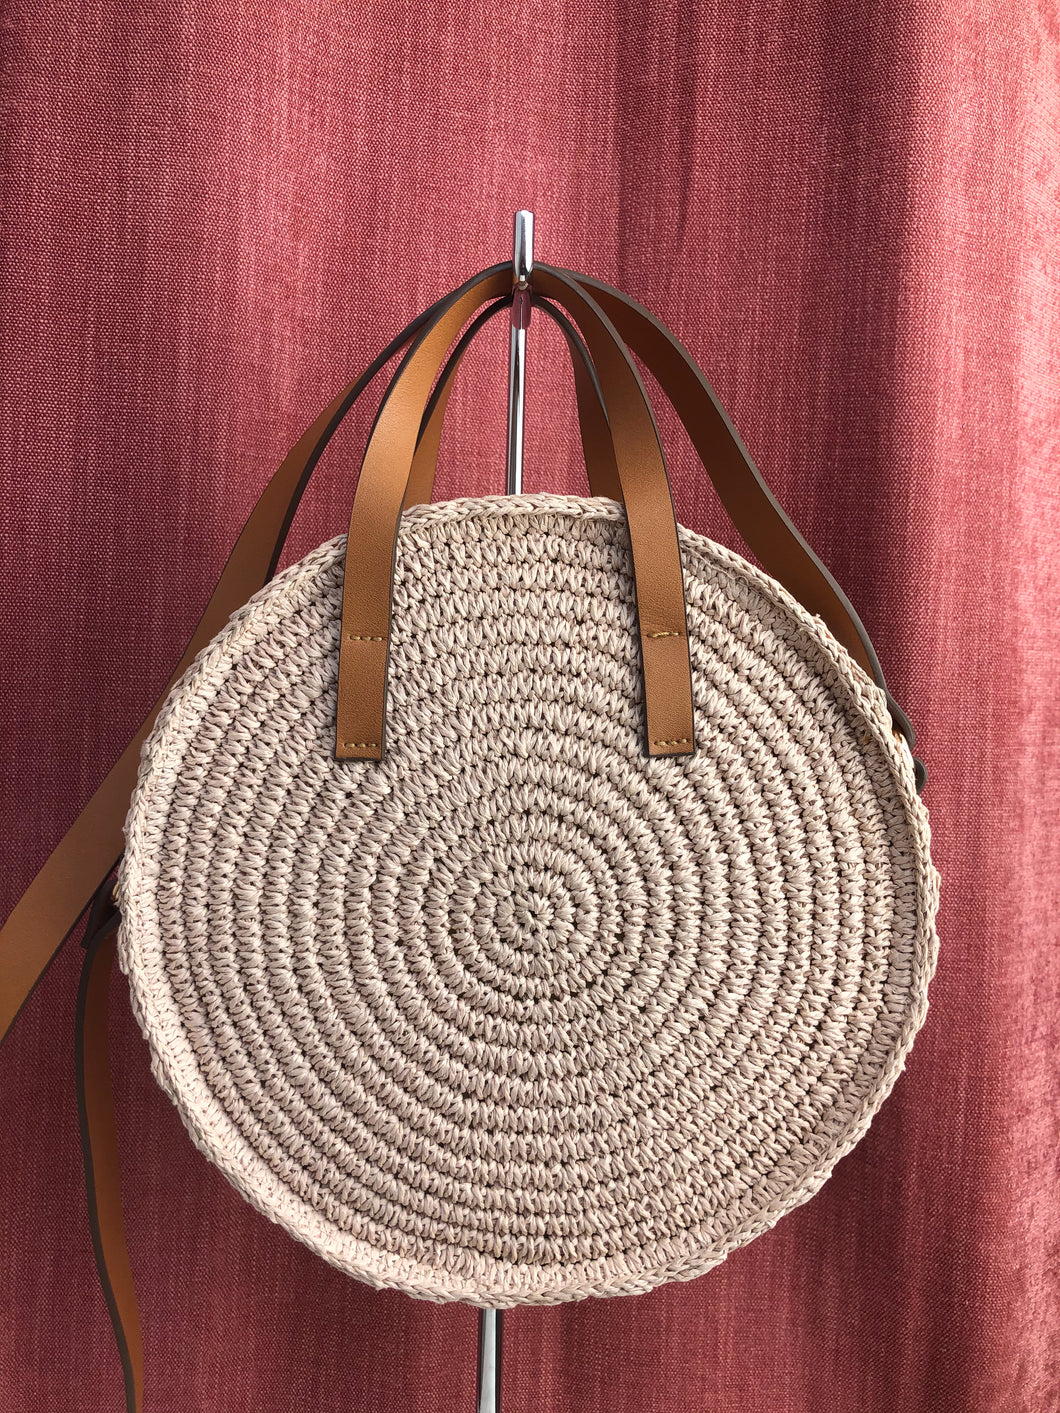 H&M Pink Woven Bag